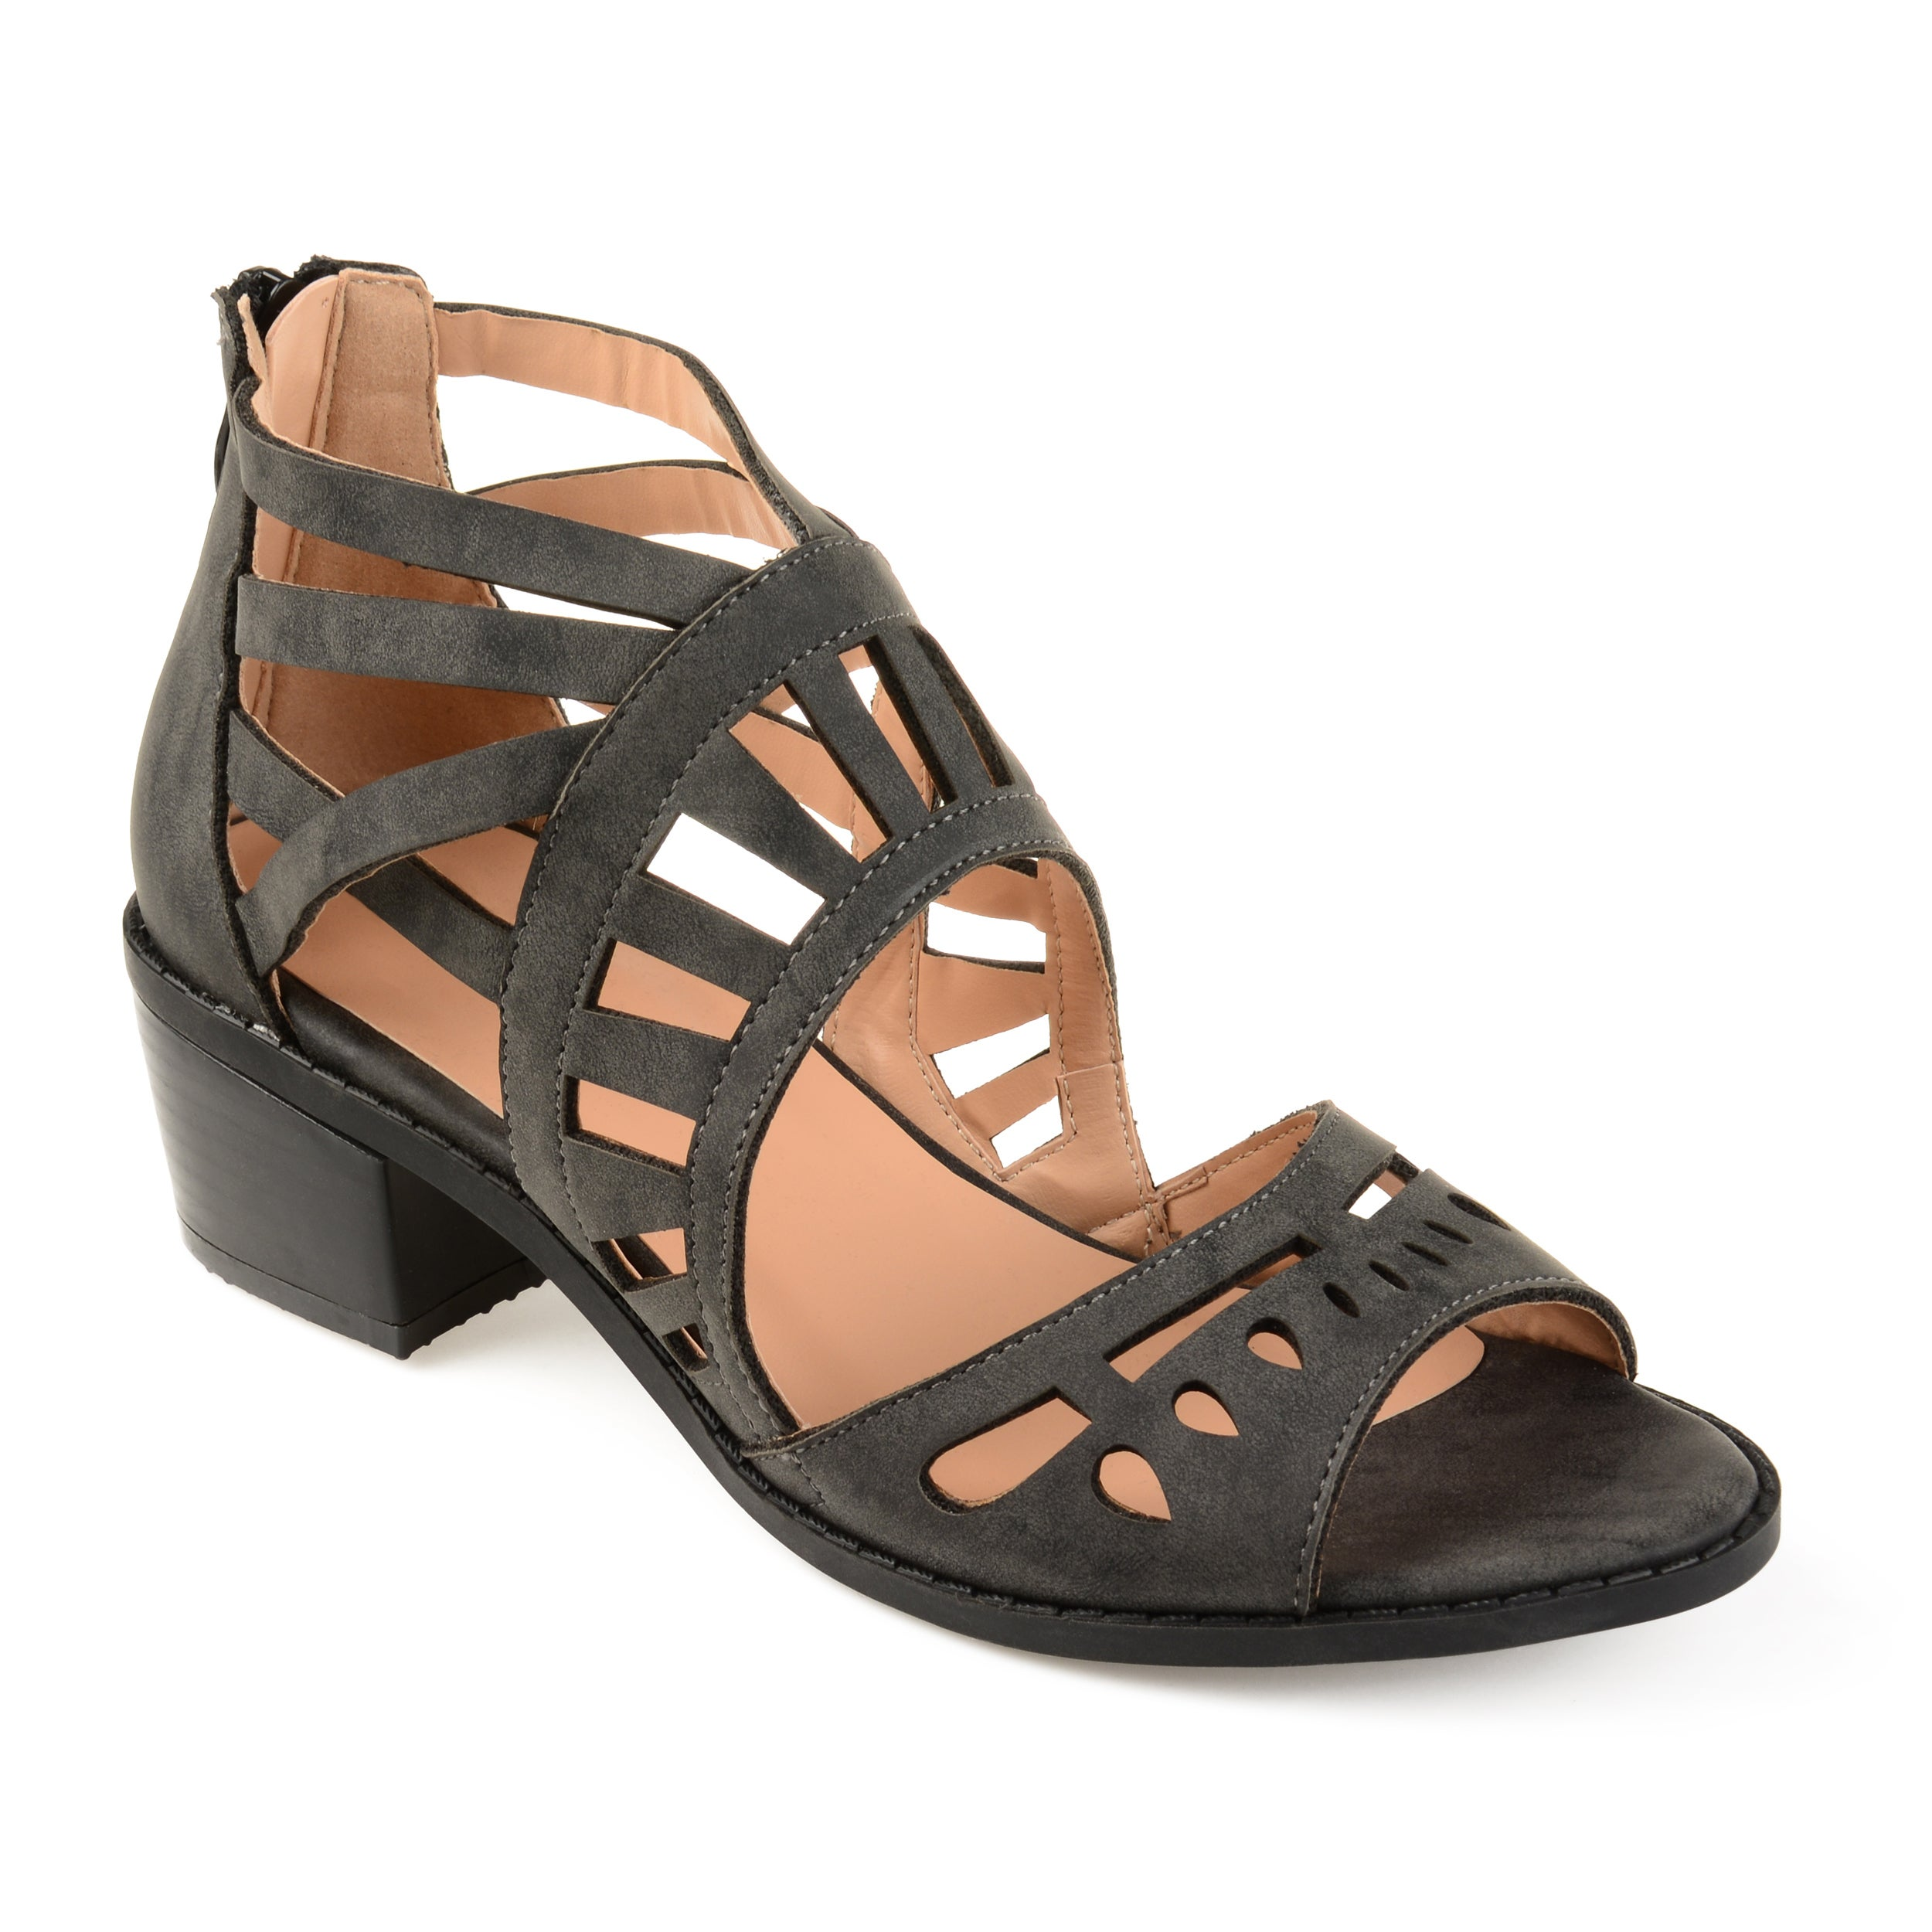 69ffd2c4882c Shop Journee Collection Women s  Dexy  Open-toe Faux Nubuck Laser-cut  Sandals - On Sale - Free Shipping Today - Overstock - 19667988